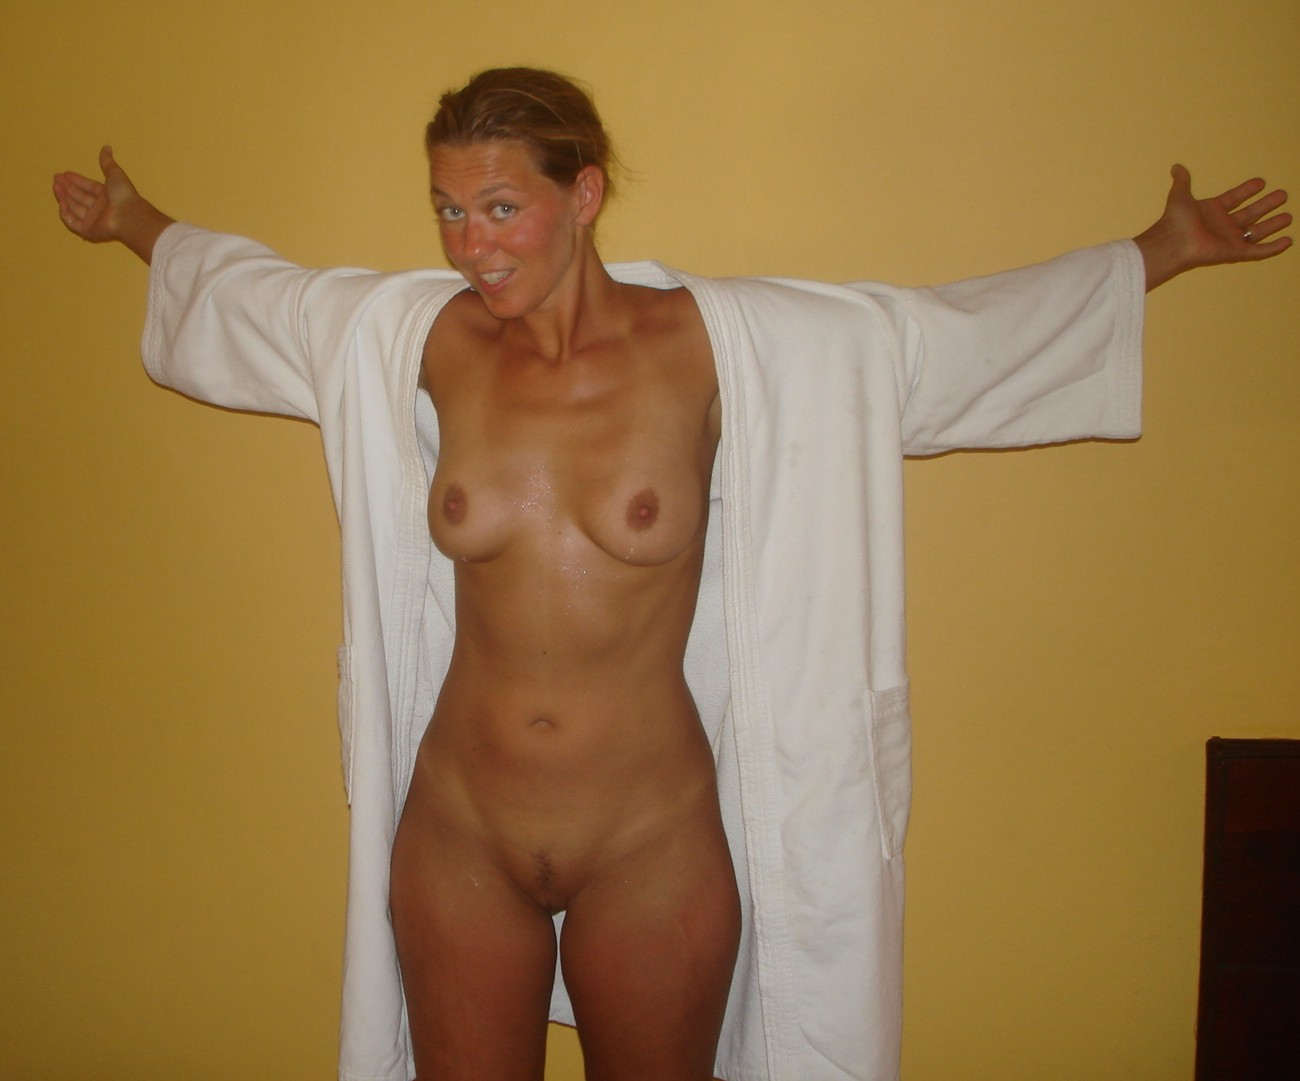 Sexy Mature Mom Gallery Mature Nude Pics Mom Naked Fuck Mother Milf ...